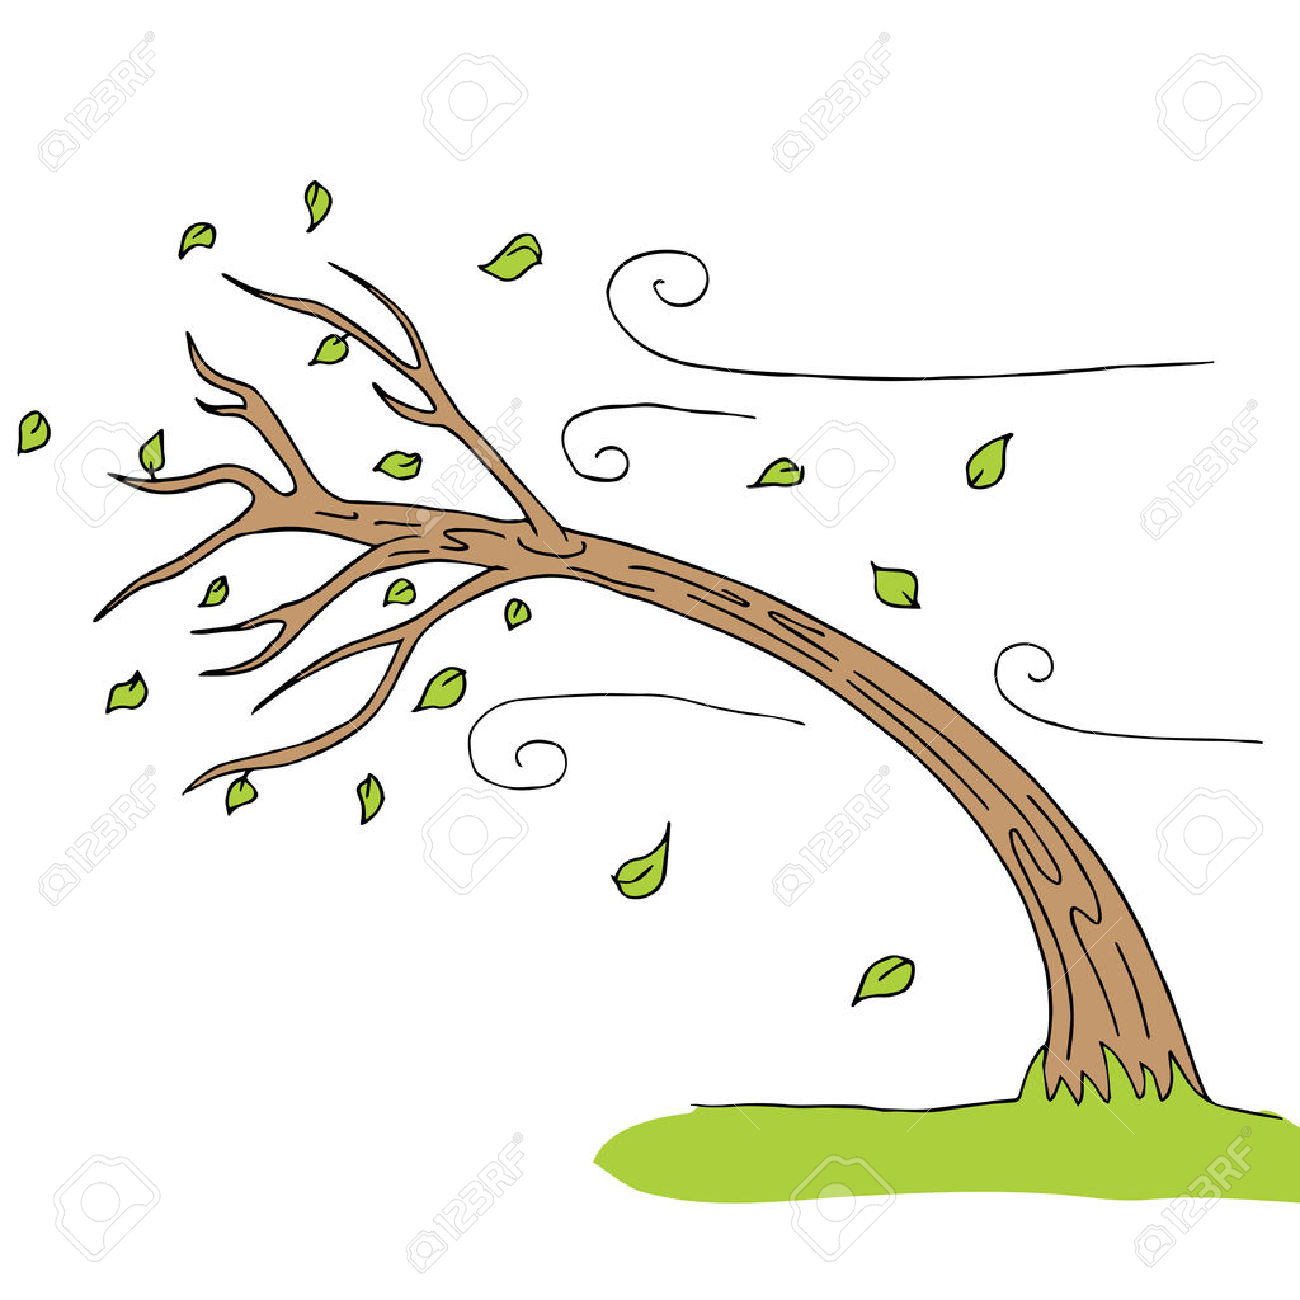 Tree clipart wind blowing #3 - Wind Clipart